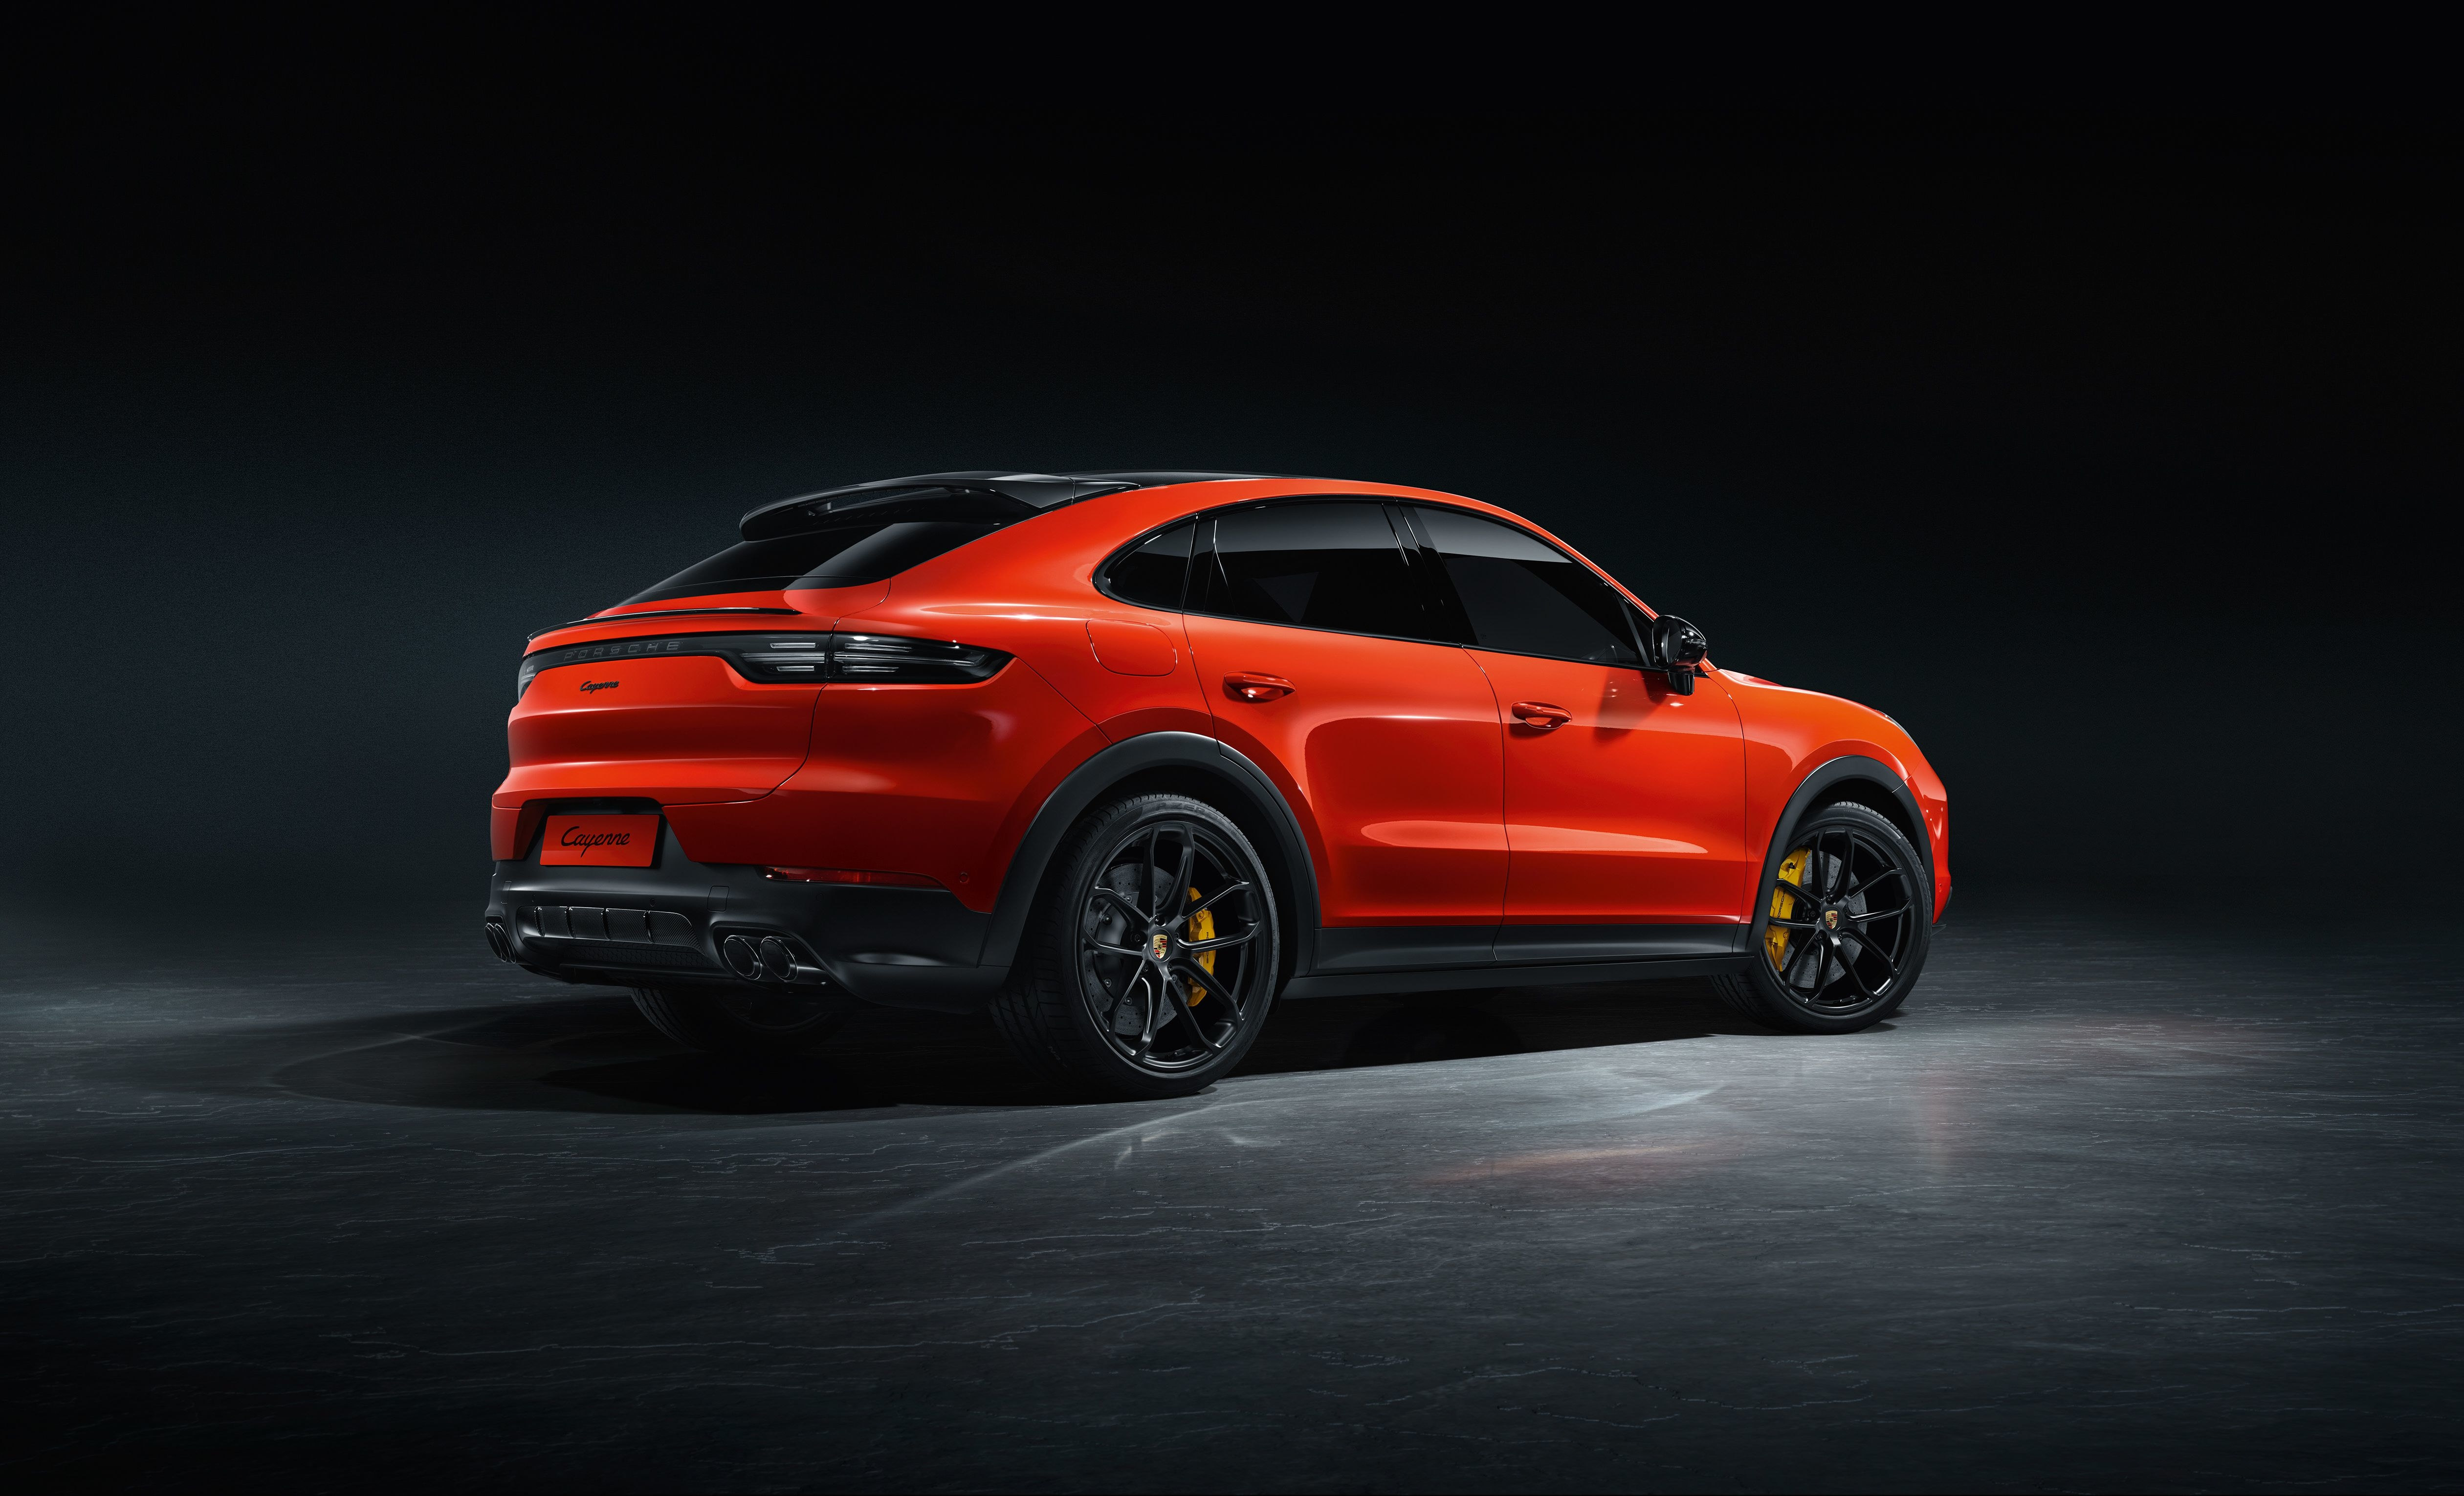 Porsche Cayenne 2020 Coupe Wallpaper Hd Cars 4k Wallpapers Images Photos And Background